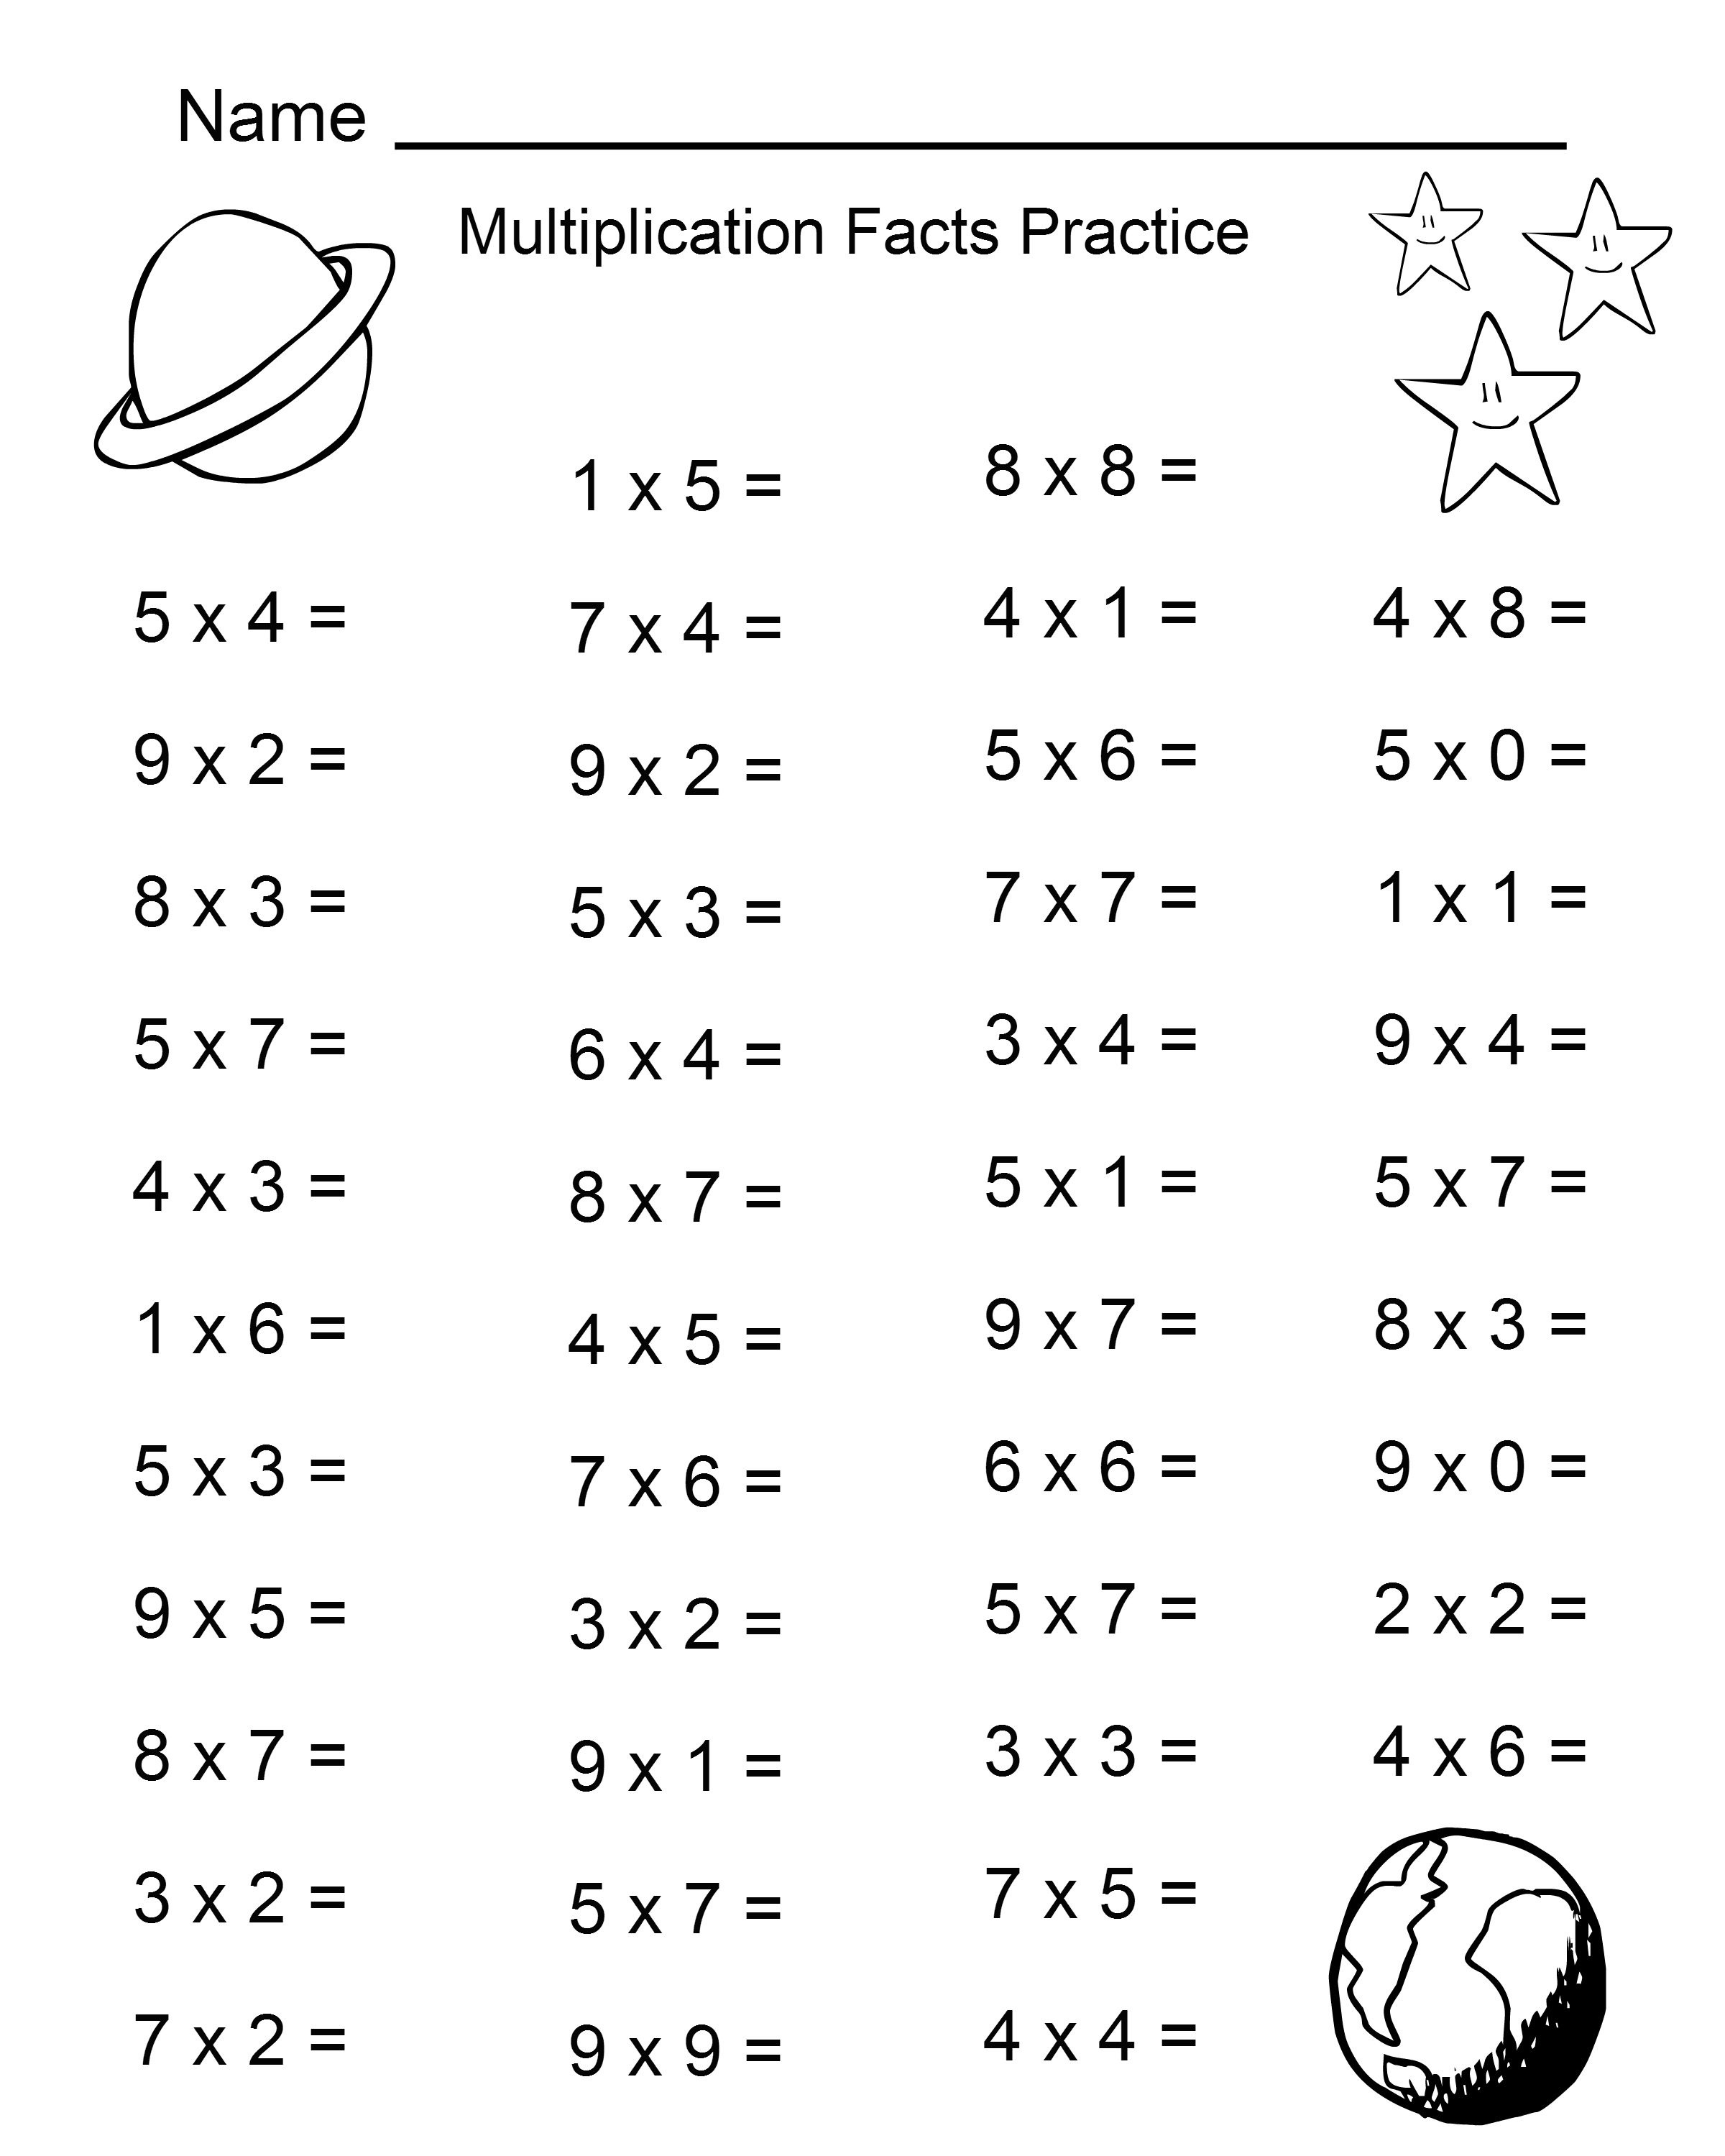 Free Printable Multiplication Worksheets For 4th Grade